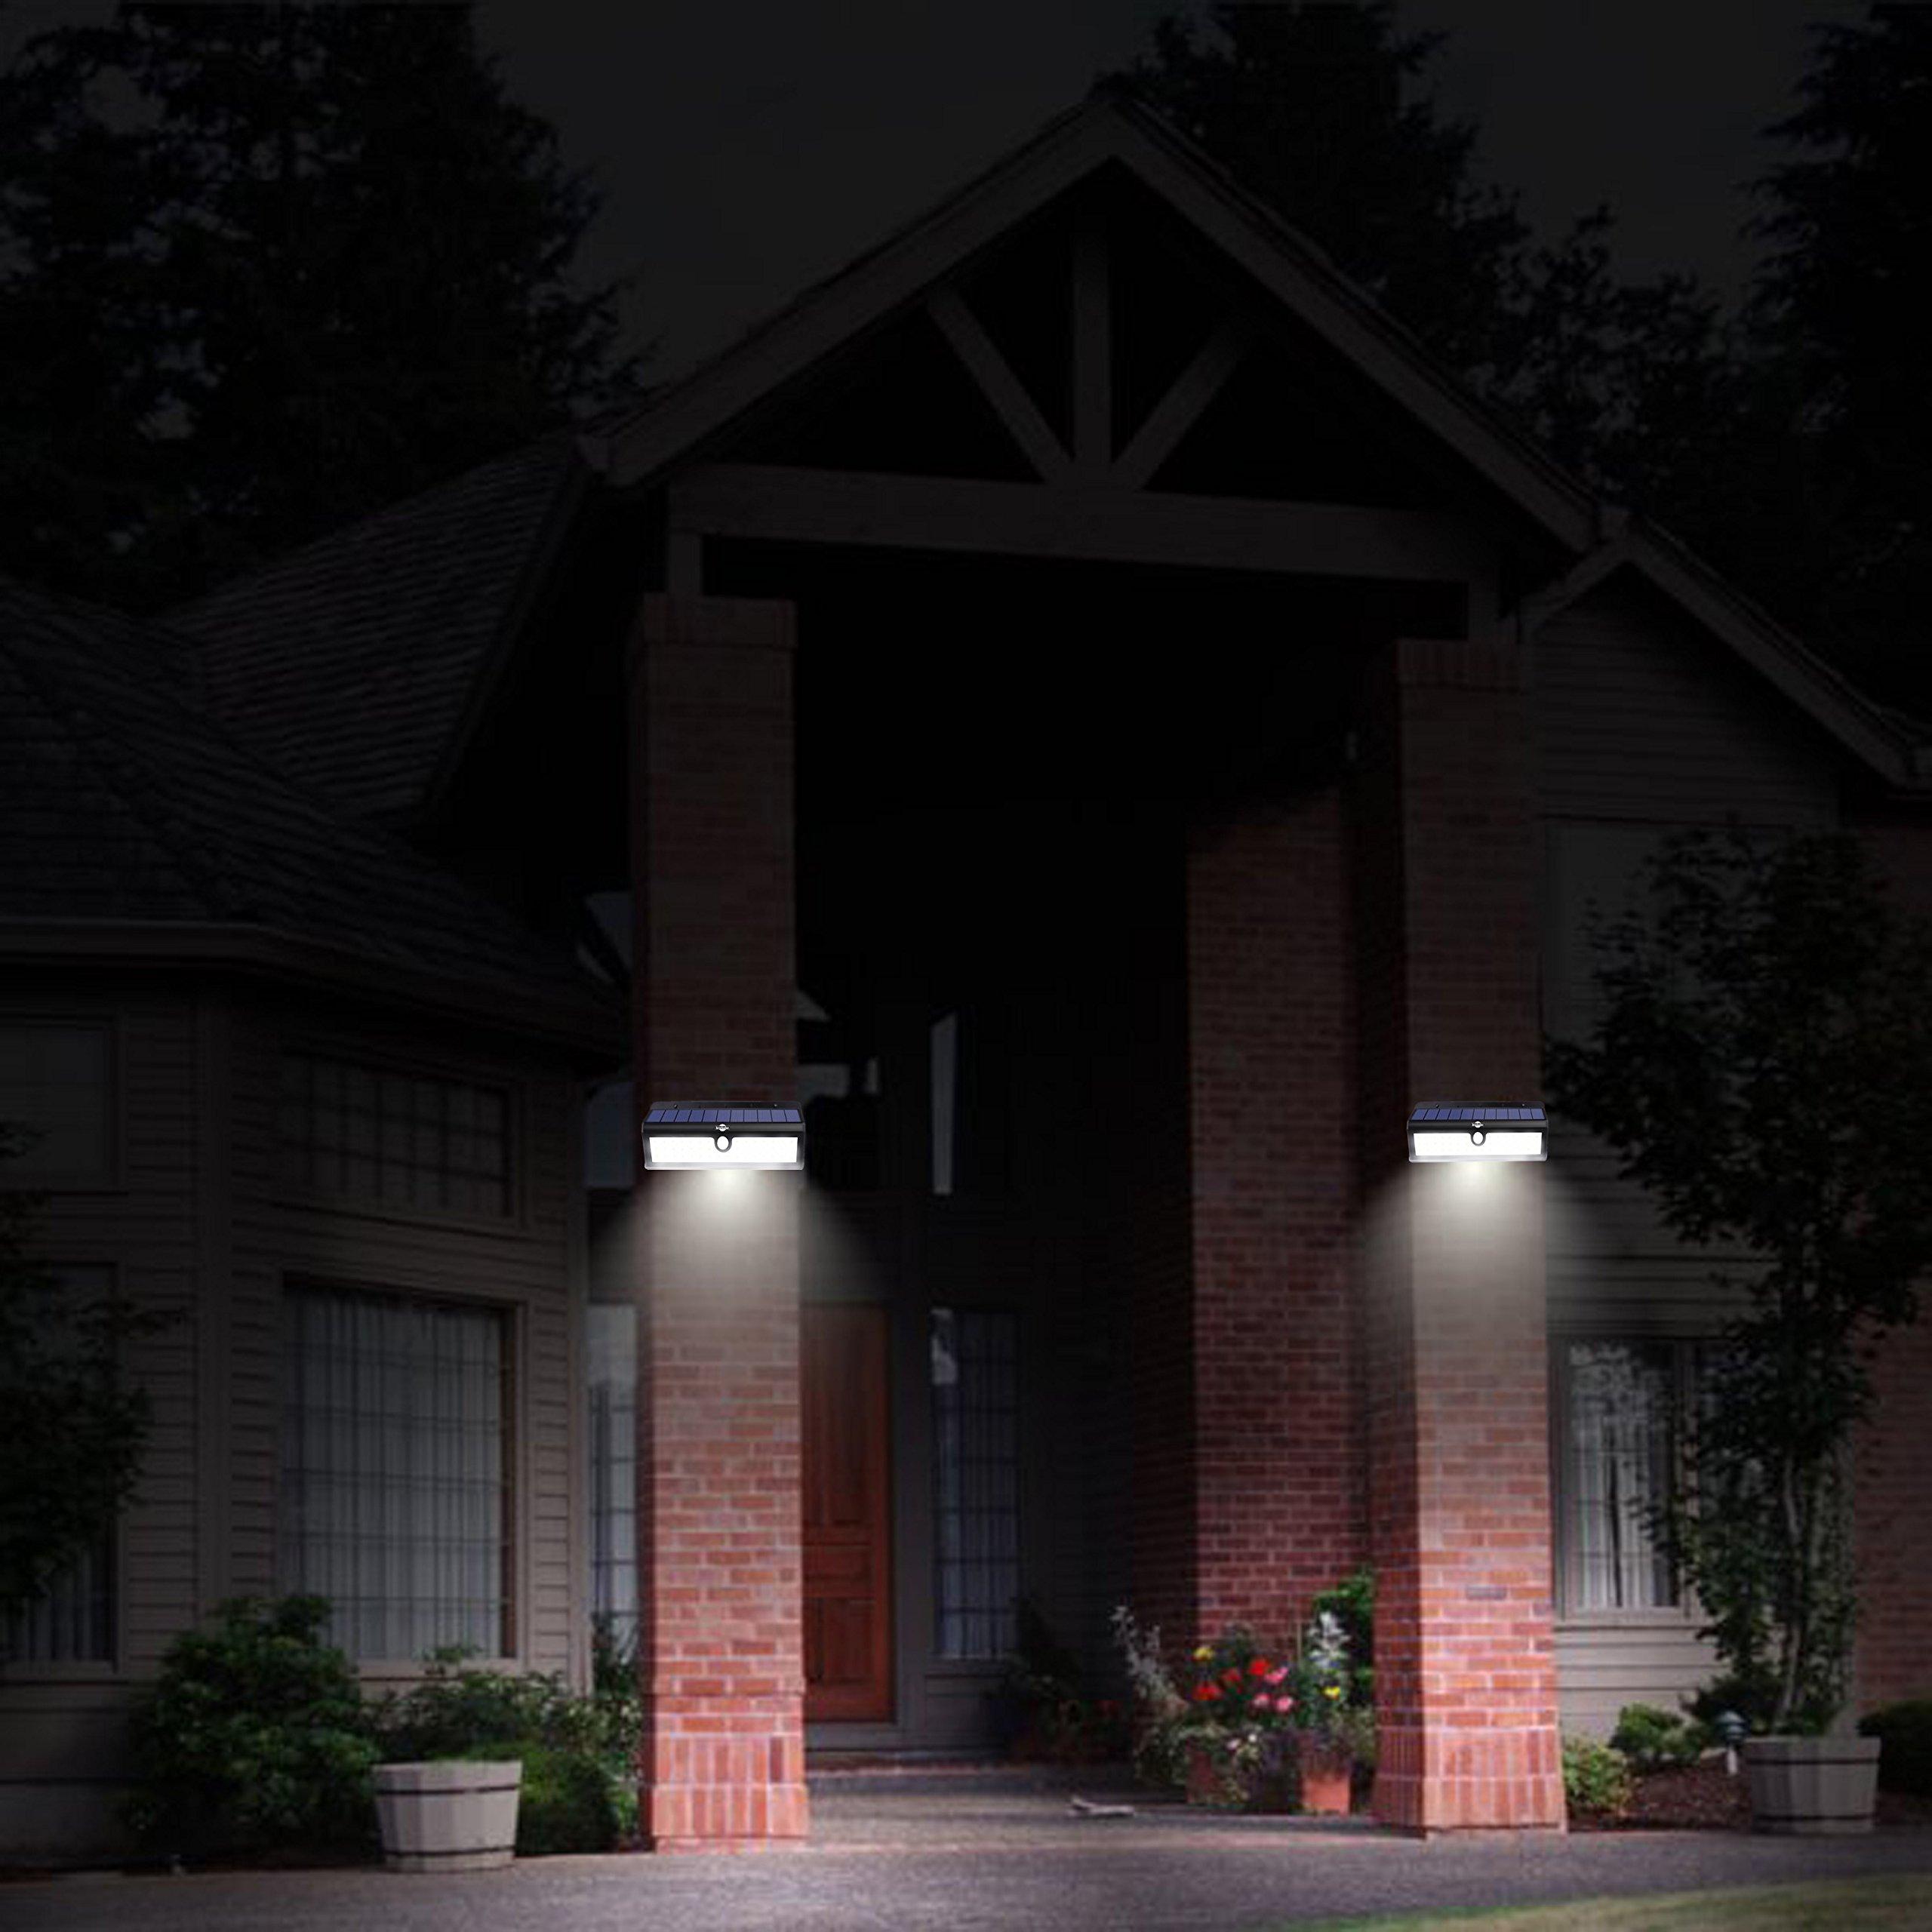 Super Bright 44 Big LED Motion Sensor Solar Powered Wireless Security Wall Outdoor Garden Ponds Accent Lighting Pond Decor Lamp Finials Lights Three Smart Modes Weatherproof Easy Install Green Tech by broSolar (Image #4)